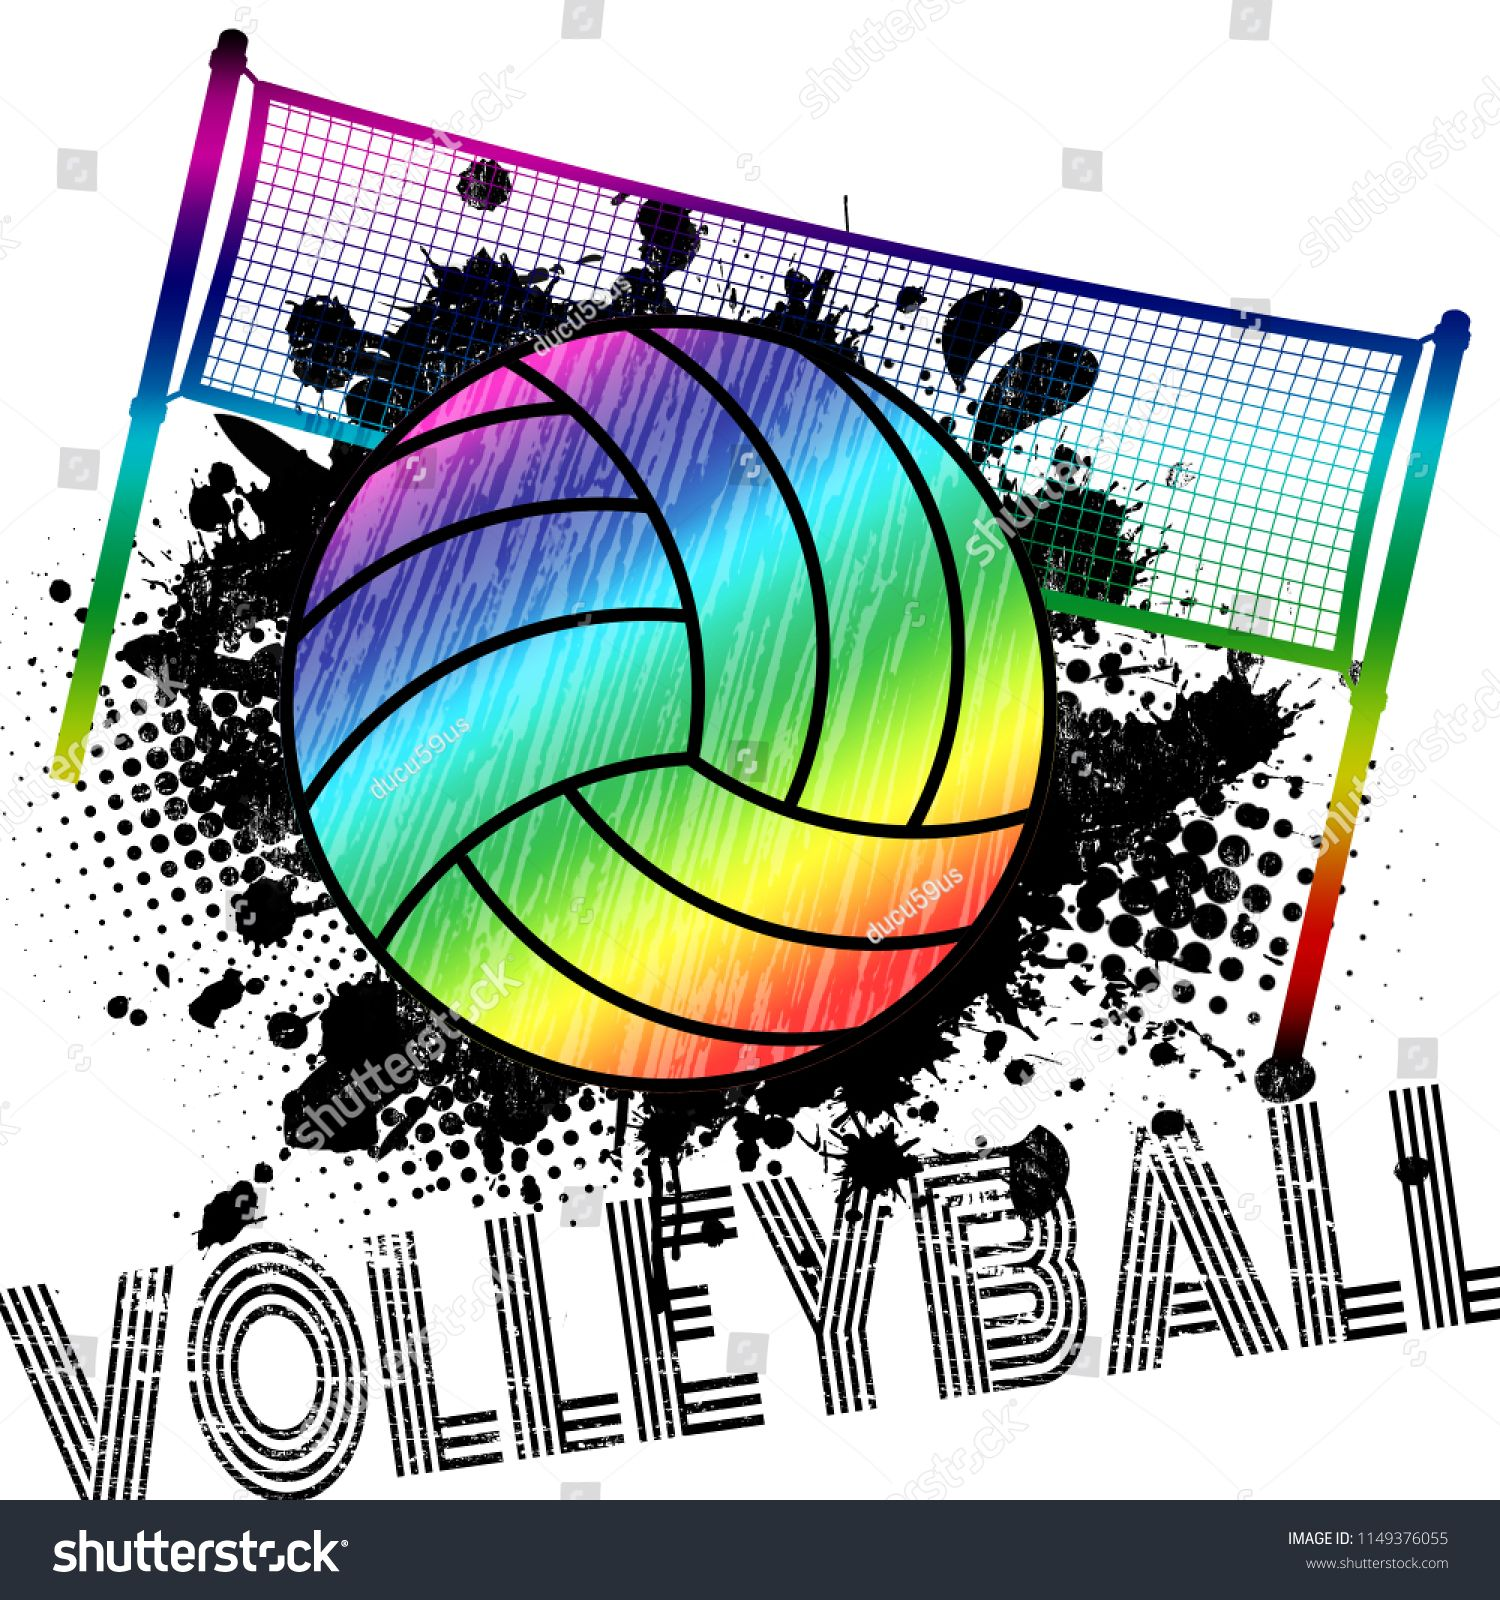 Poster Or Banner With A Volleyball Ball And Splashes On Abstract Background Vector Illustration Ad Spon Volleyb Vector Illustration Poster Design Poster